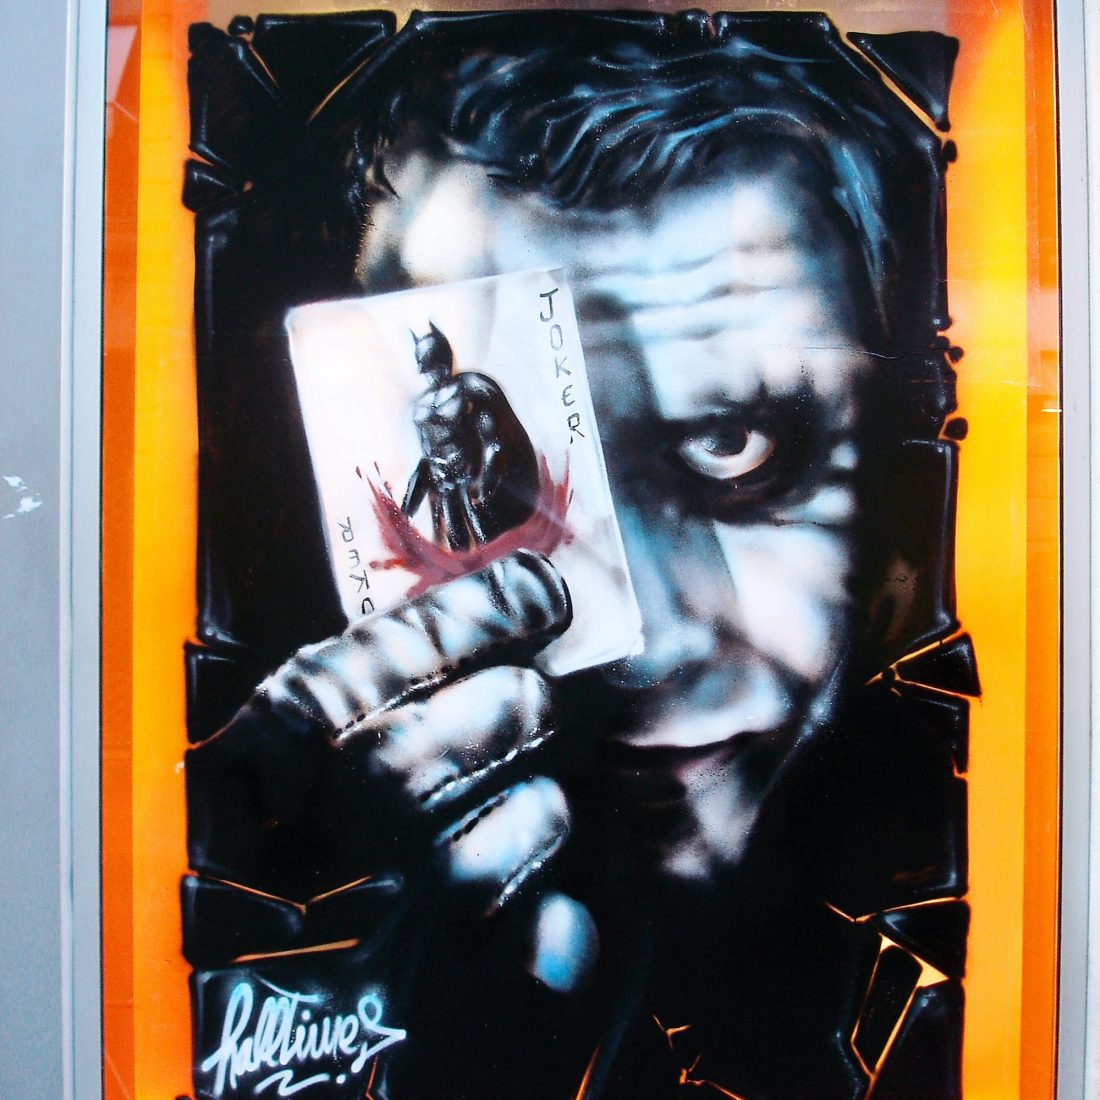 graffiti vitrine decoration Joker graffeur bordeaux